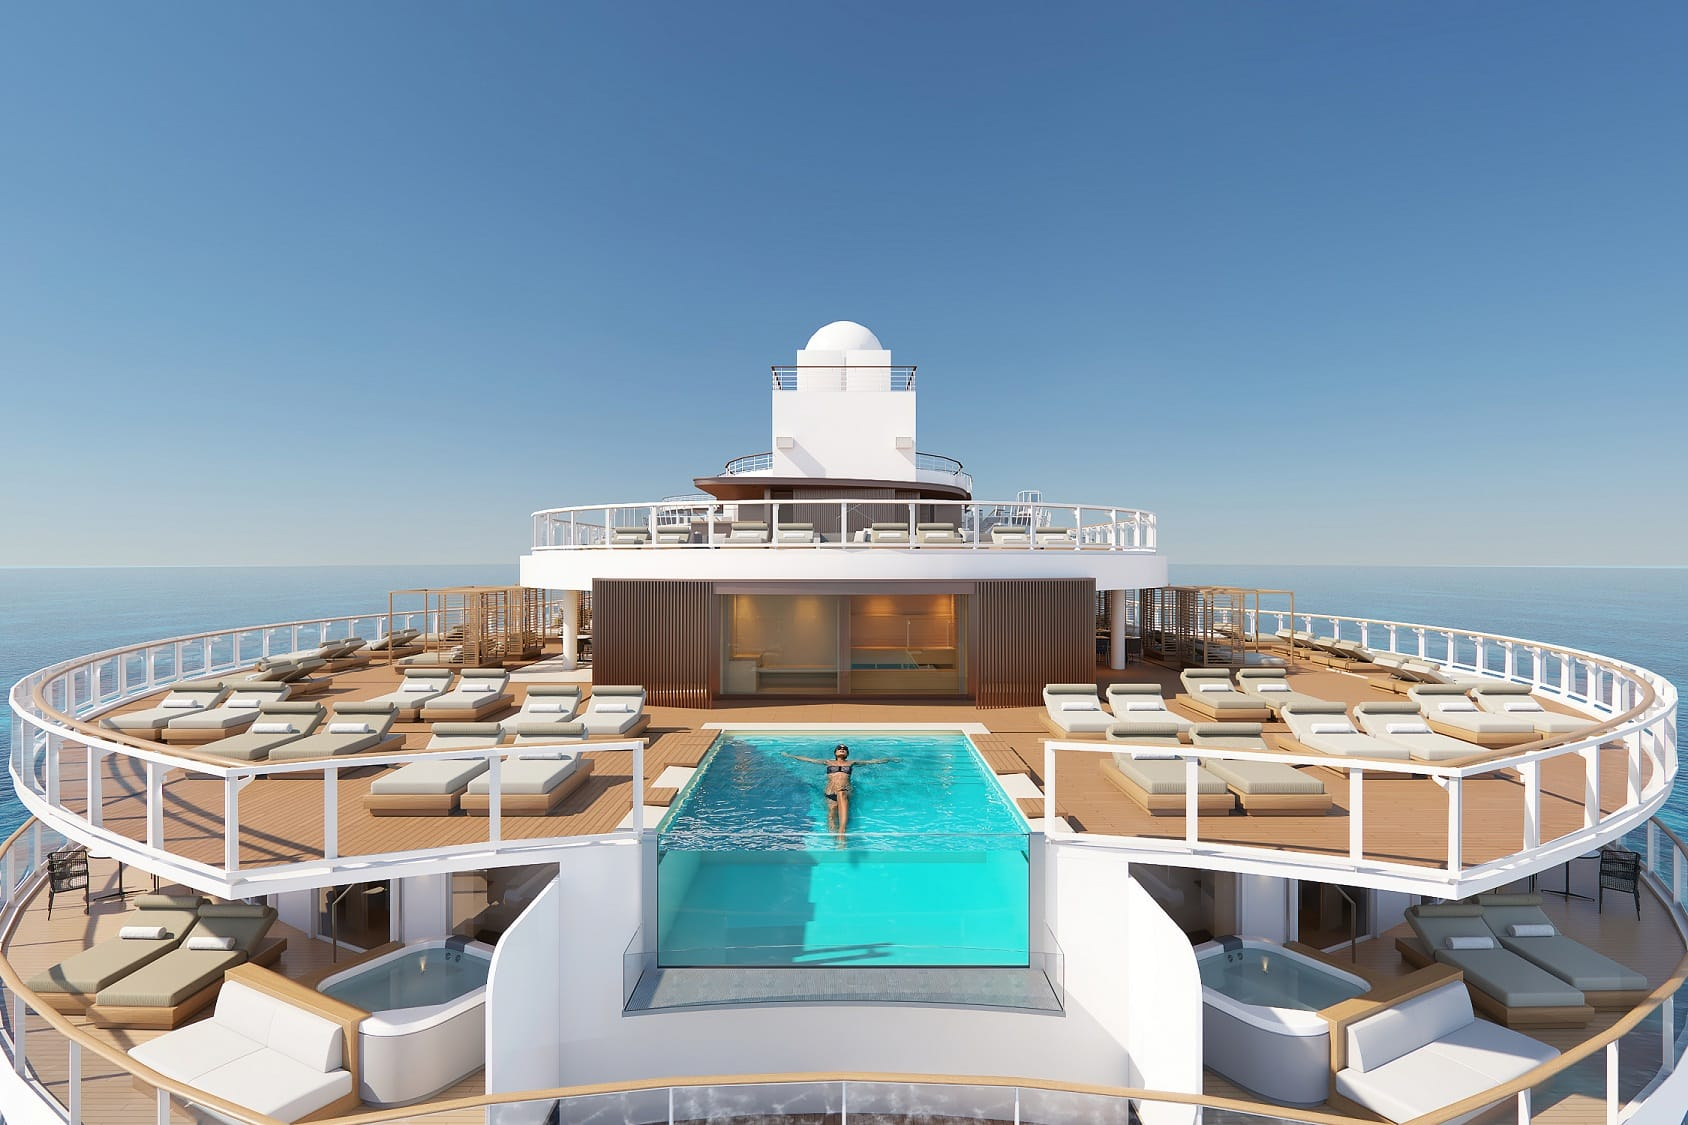 The Heaven Sundeck Norwegian Prima © Norwegian Cruise Line